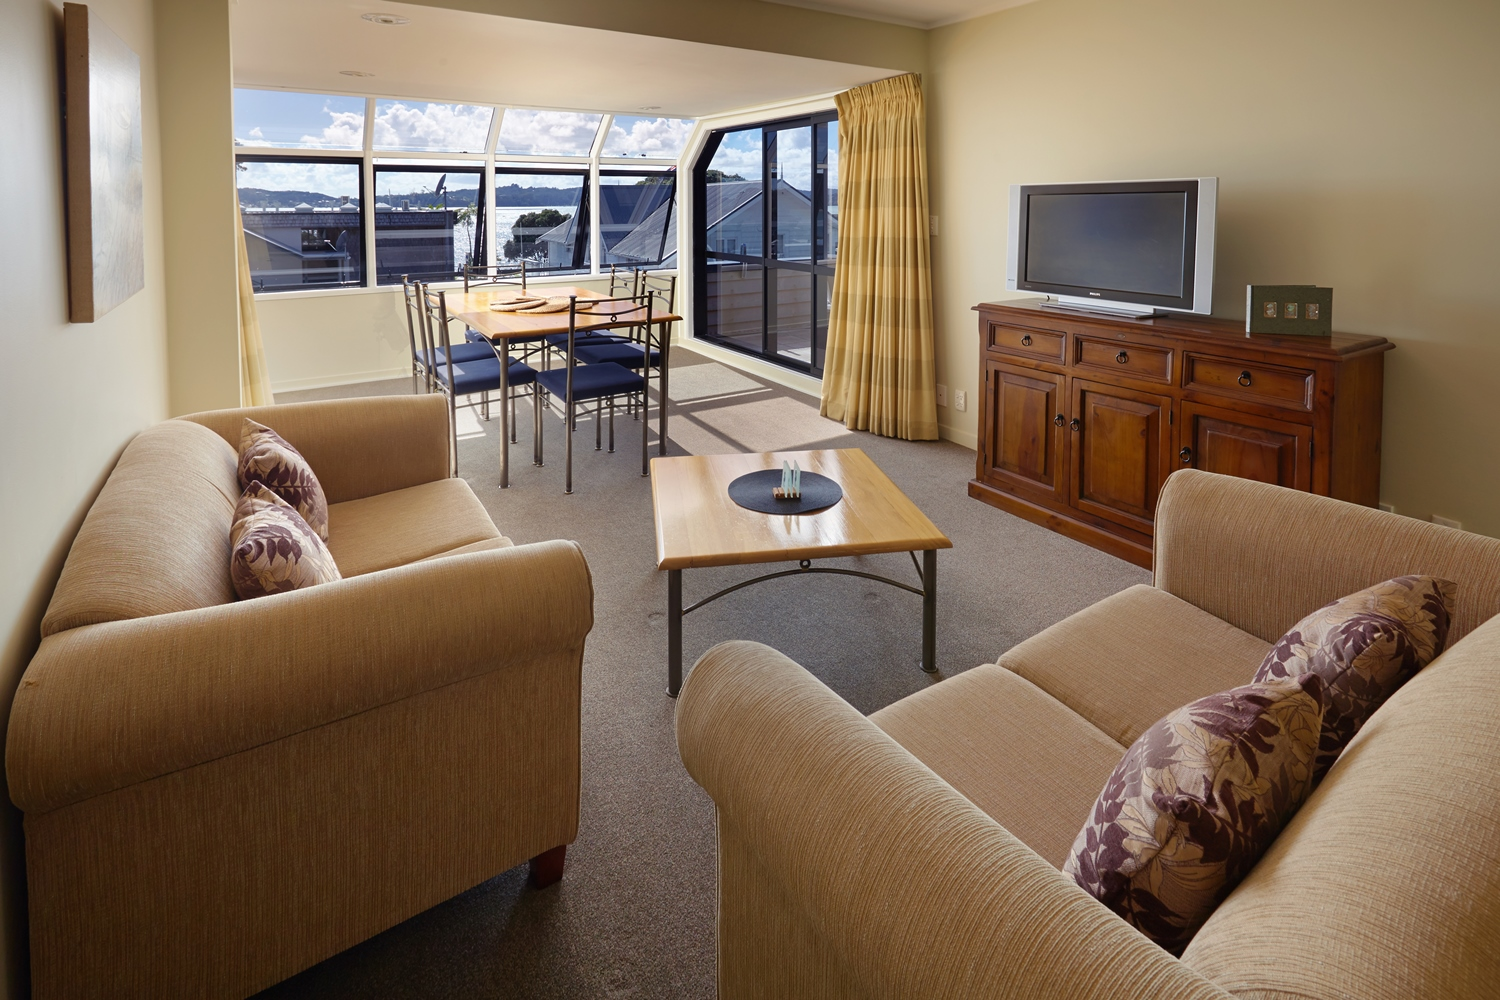 pioneer-apartments-paihia-pool-view-penthouse-open-plan-living.jpg